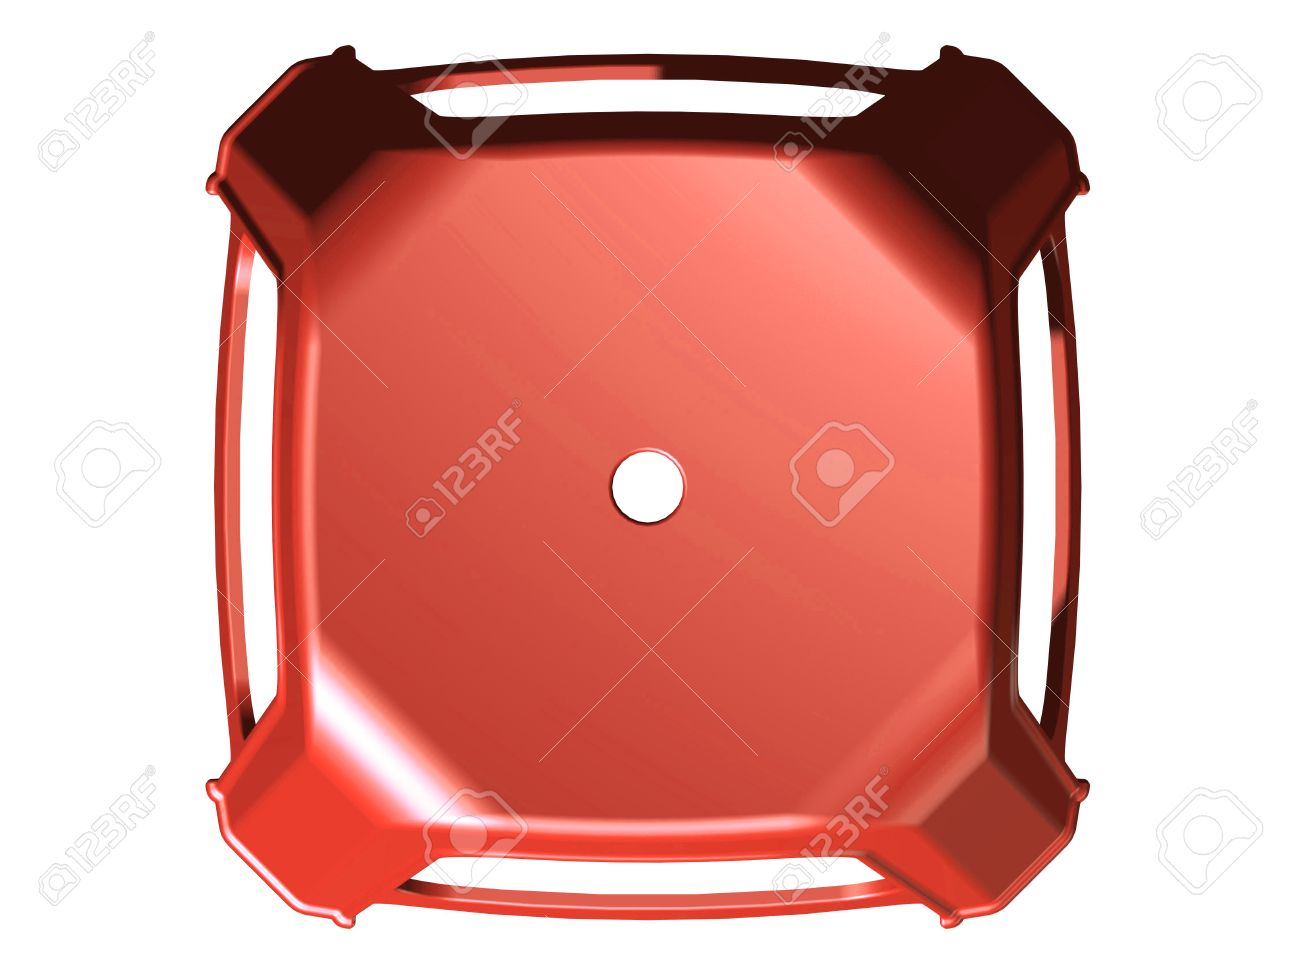 3D plastic stool chair top view Red color Stock Photo - 25836902  sc 1 st  123RF Stock Photos & 3D Plastic Stool Chair Top View Red Color Stock Photo Picture ... islam-shia.org